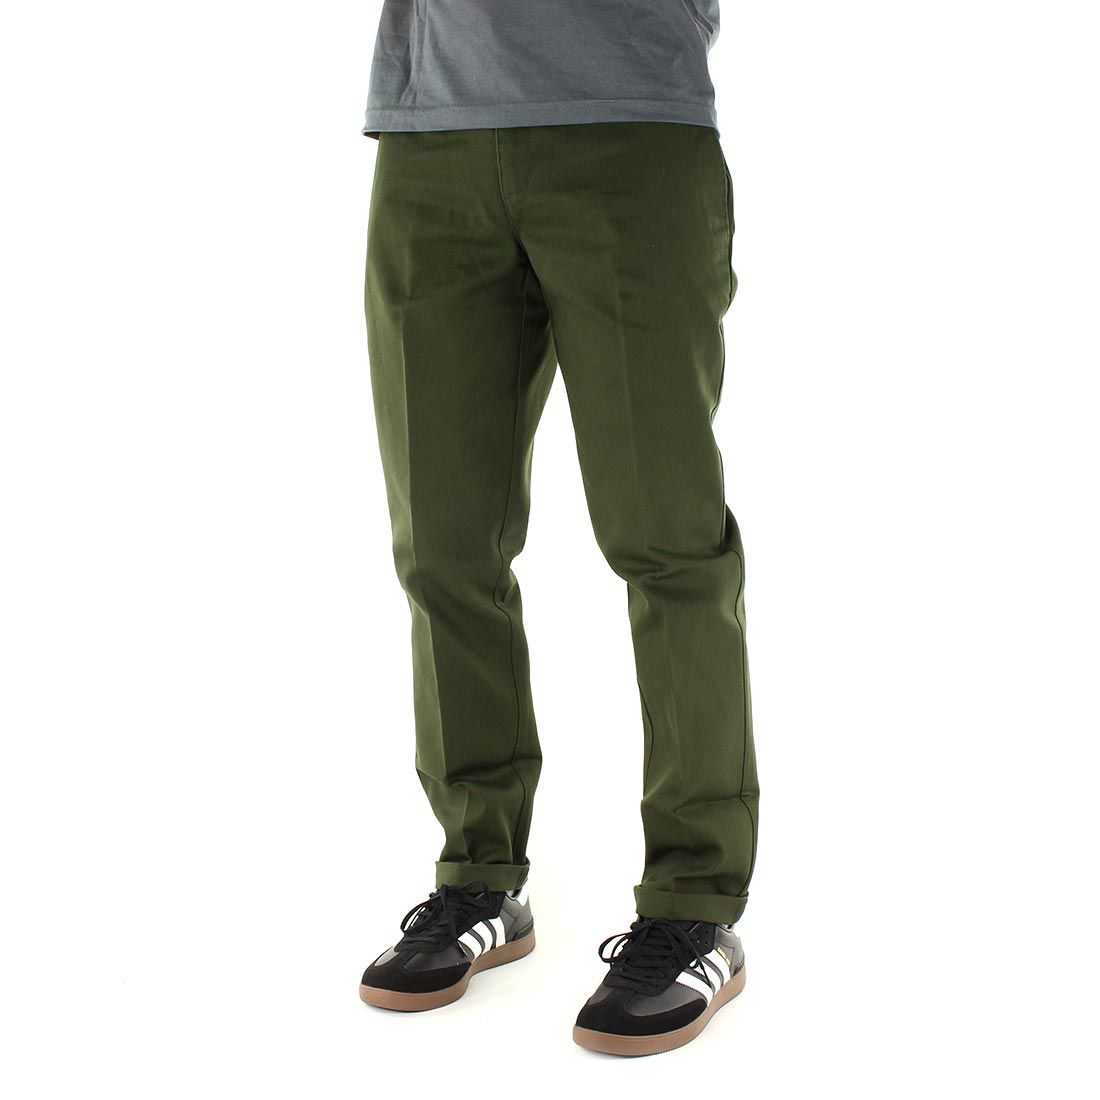 Dickies 872 slim fit work pant olive green with images